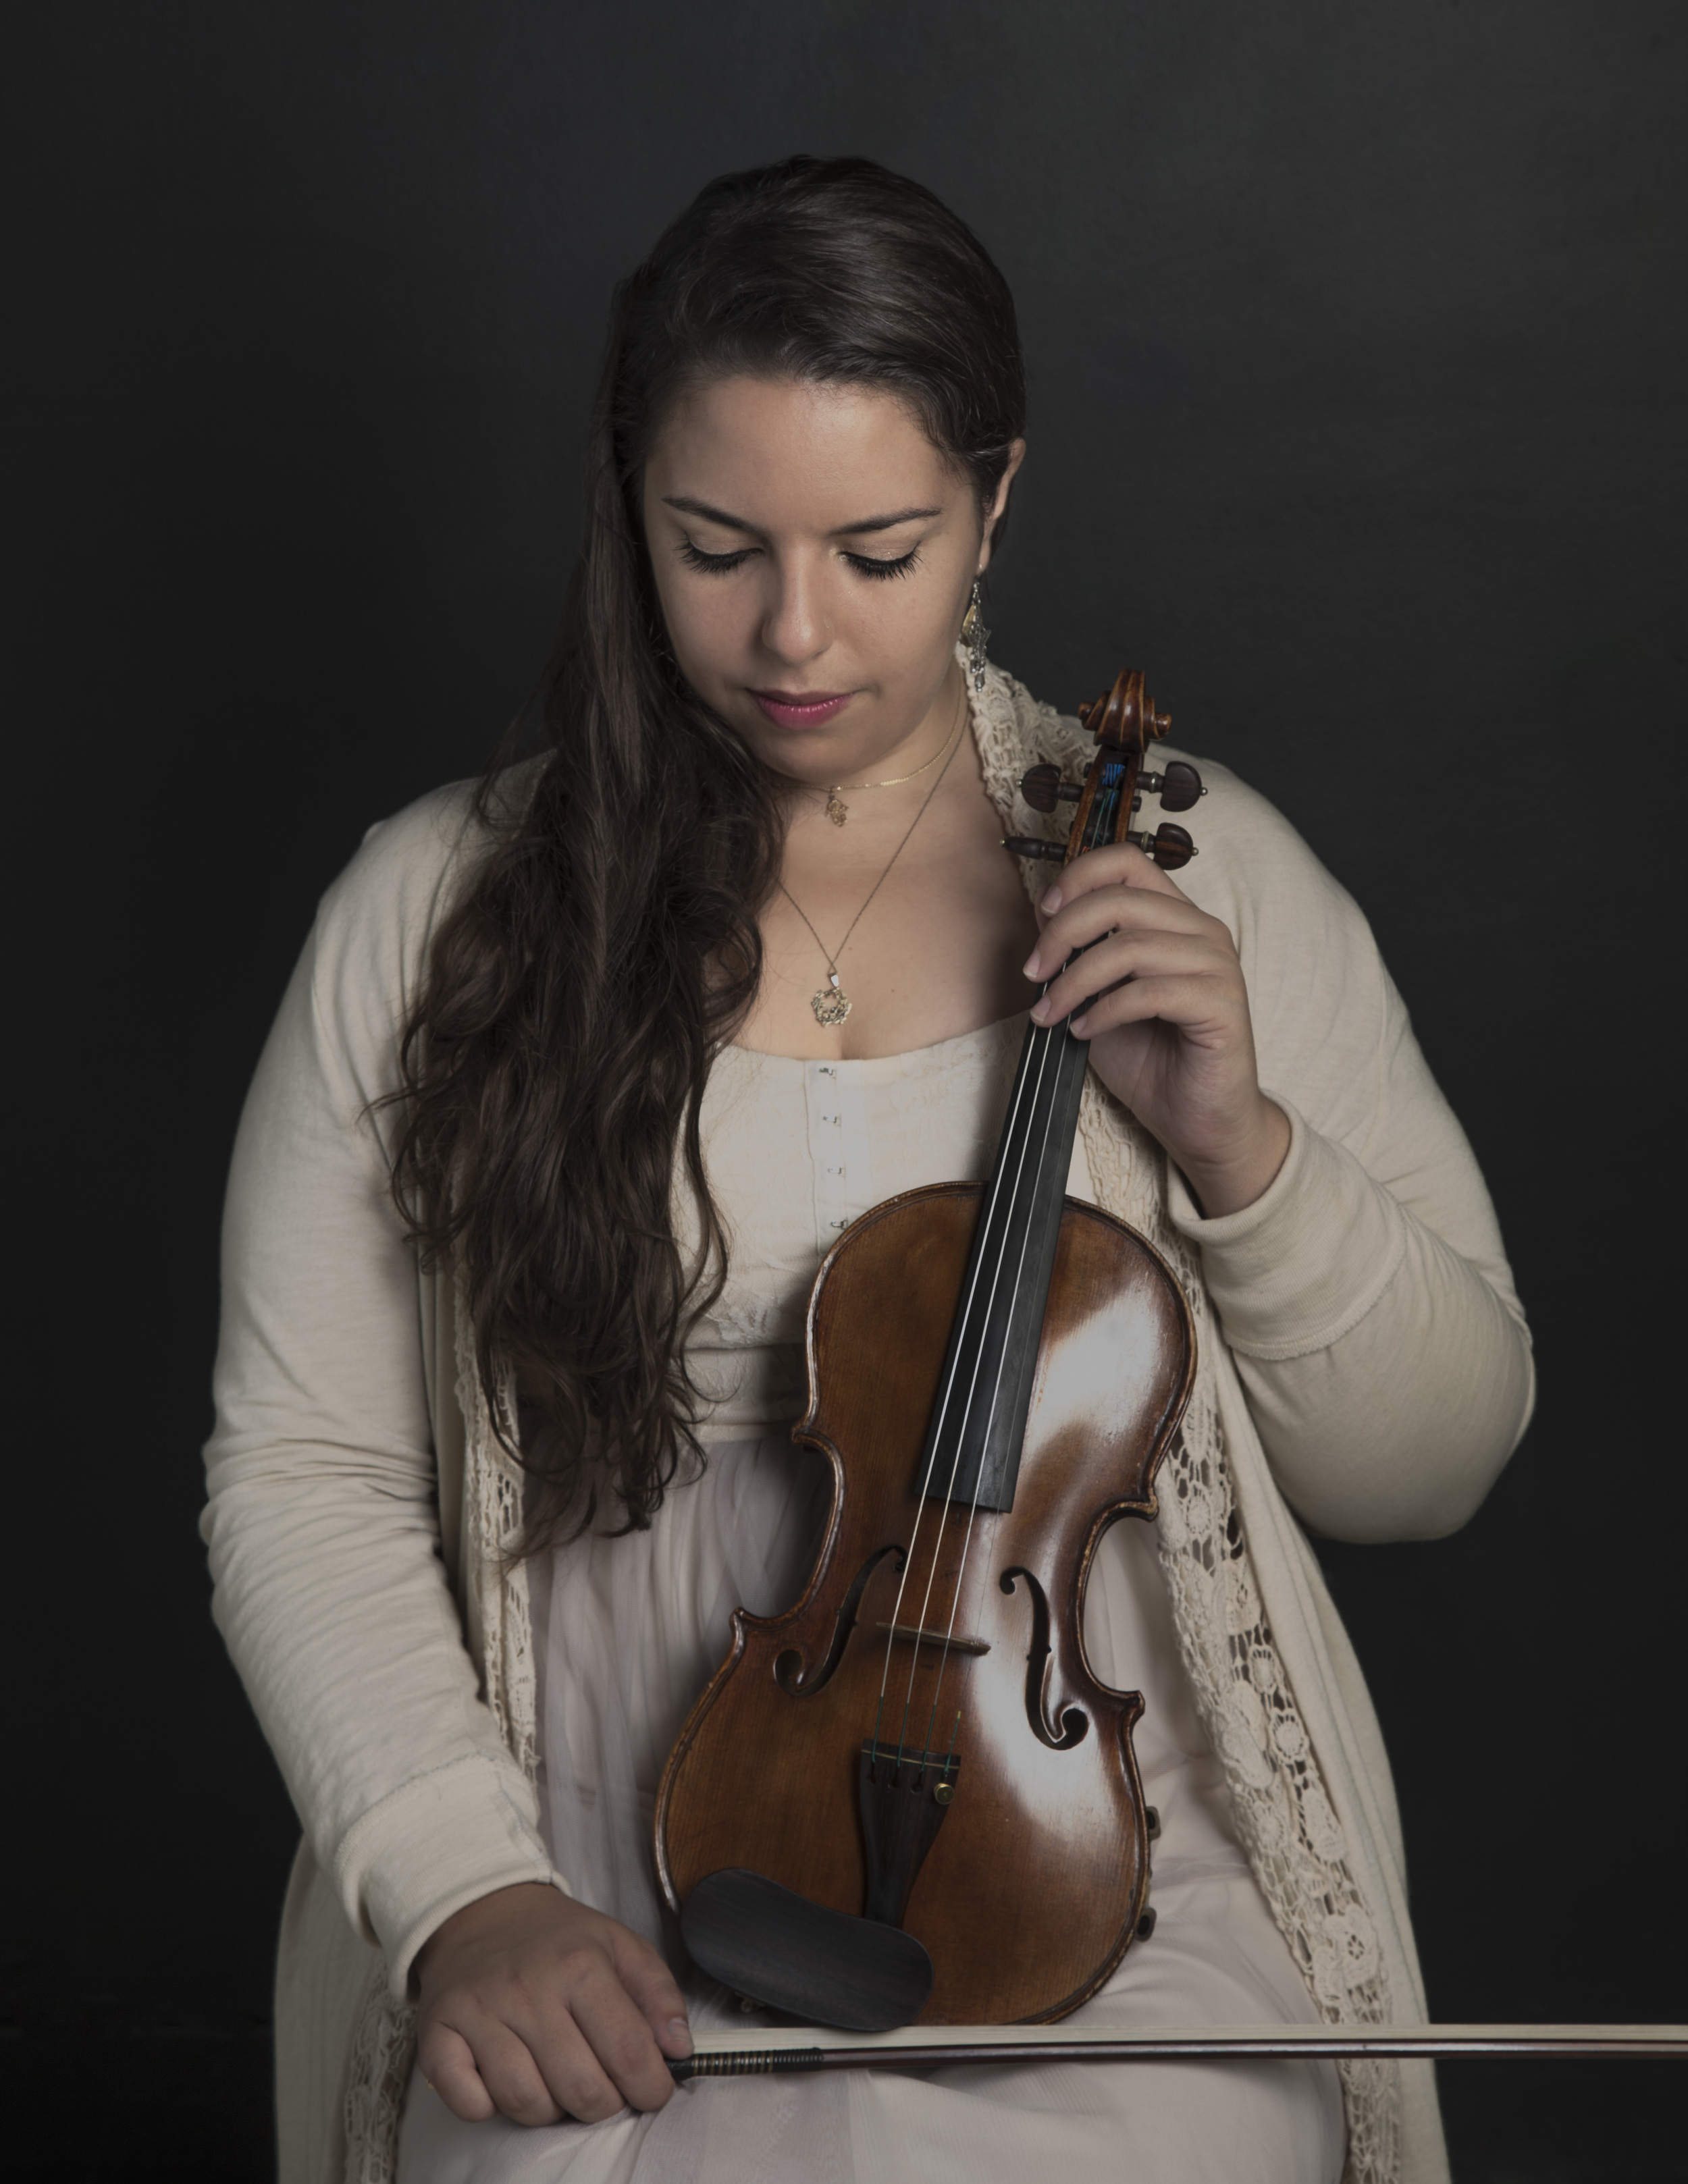 Lili Sarayrah   Violin    Lili completed her Bachelors of Music degree in violin performance at the Eastman School of Music in May 2014 and will spend the upcoming year focusing on a project that brings music to local refugees through the University of Rochester's Kauffman Entrepreneurial Year.